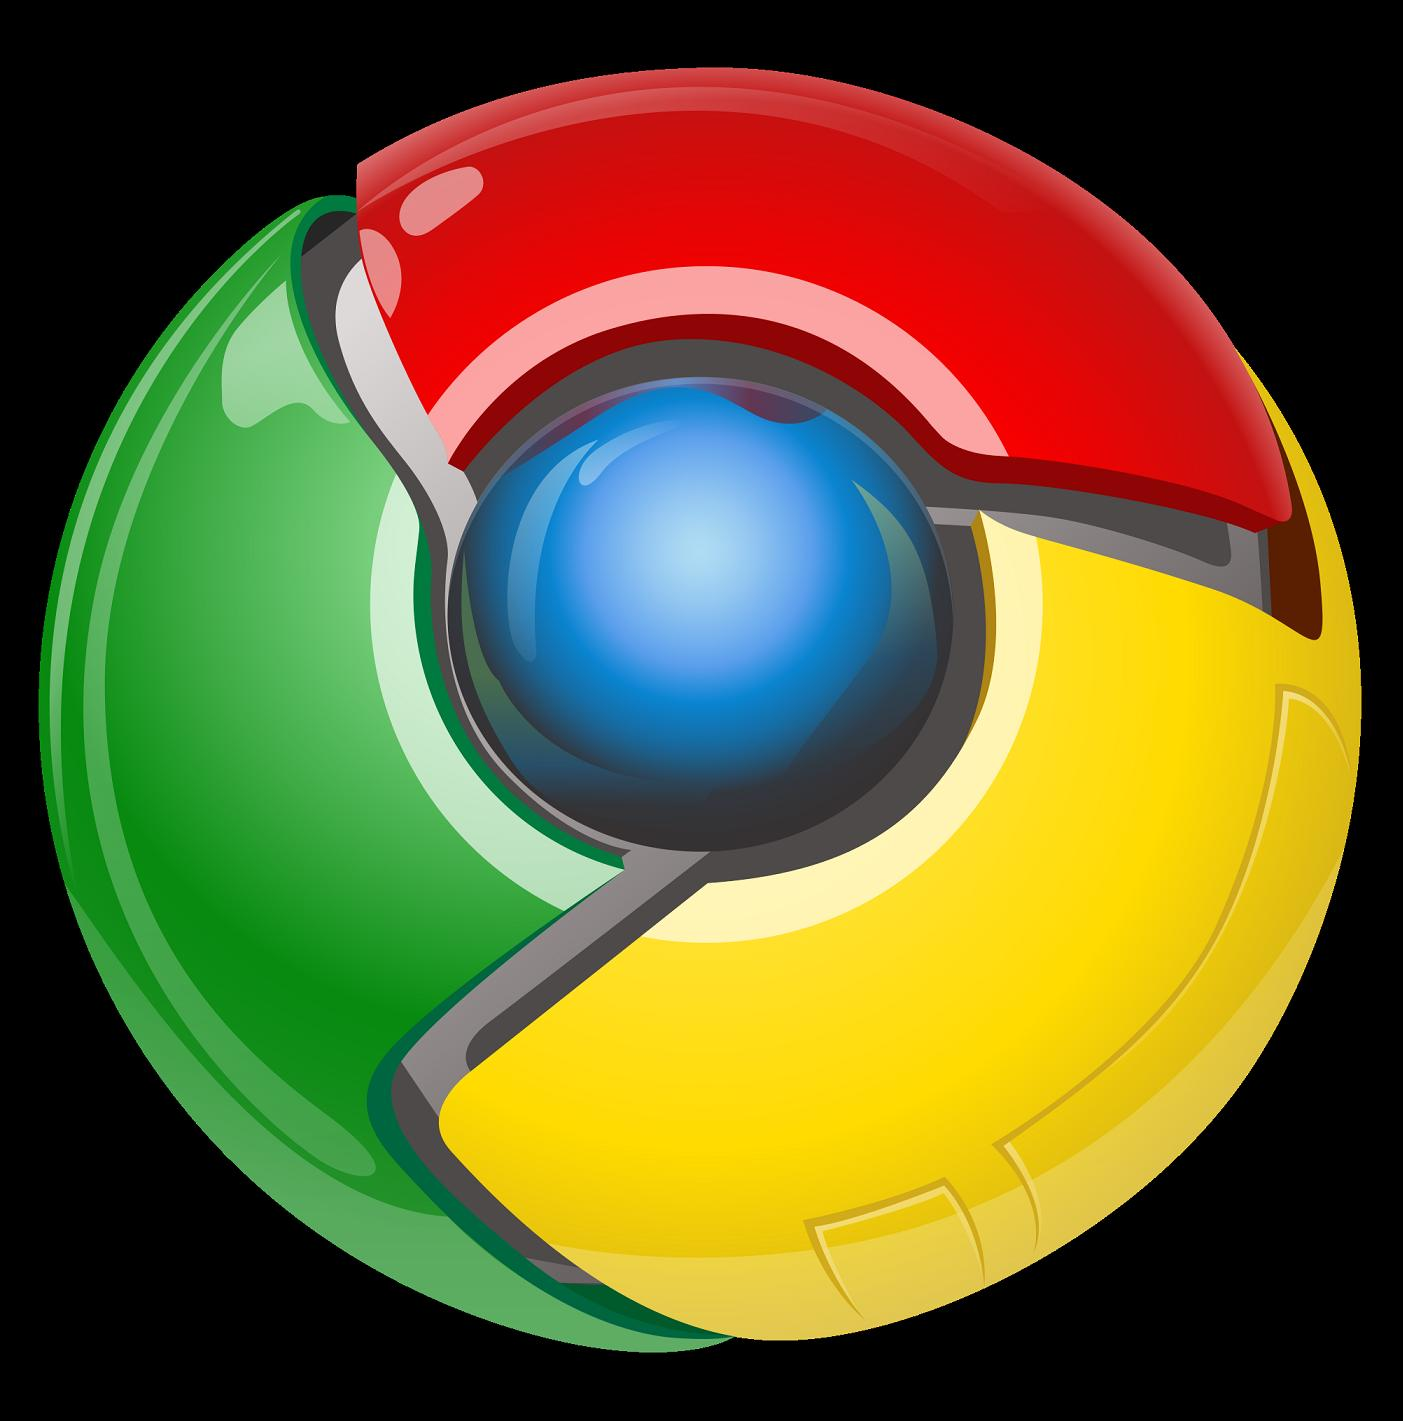 8 <b>Google Chrome HD Wallpapers</b> | <b>Backgrounds</b> - <b>Wallpaper</b> Abyss